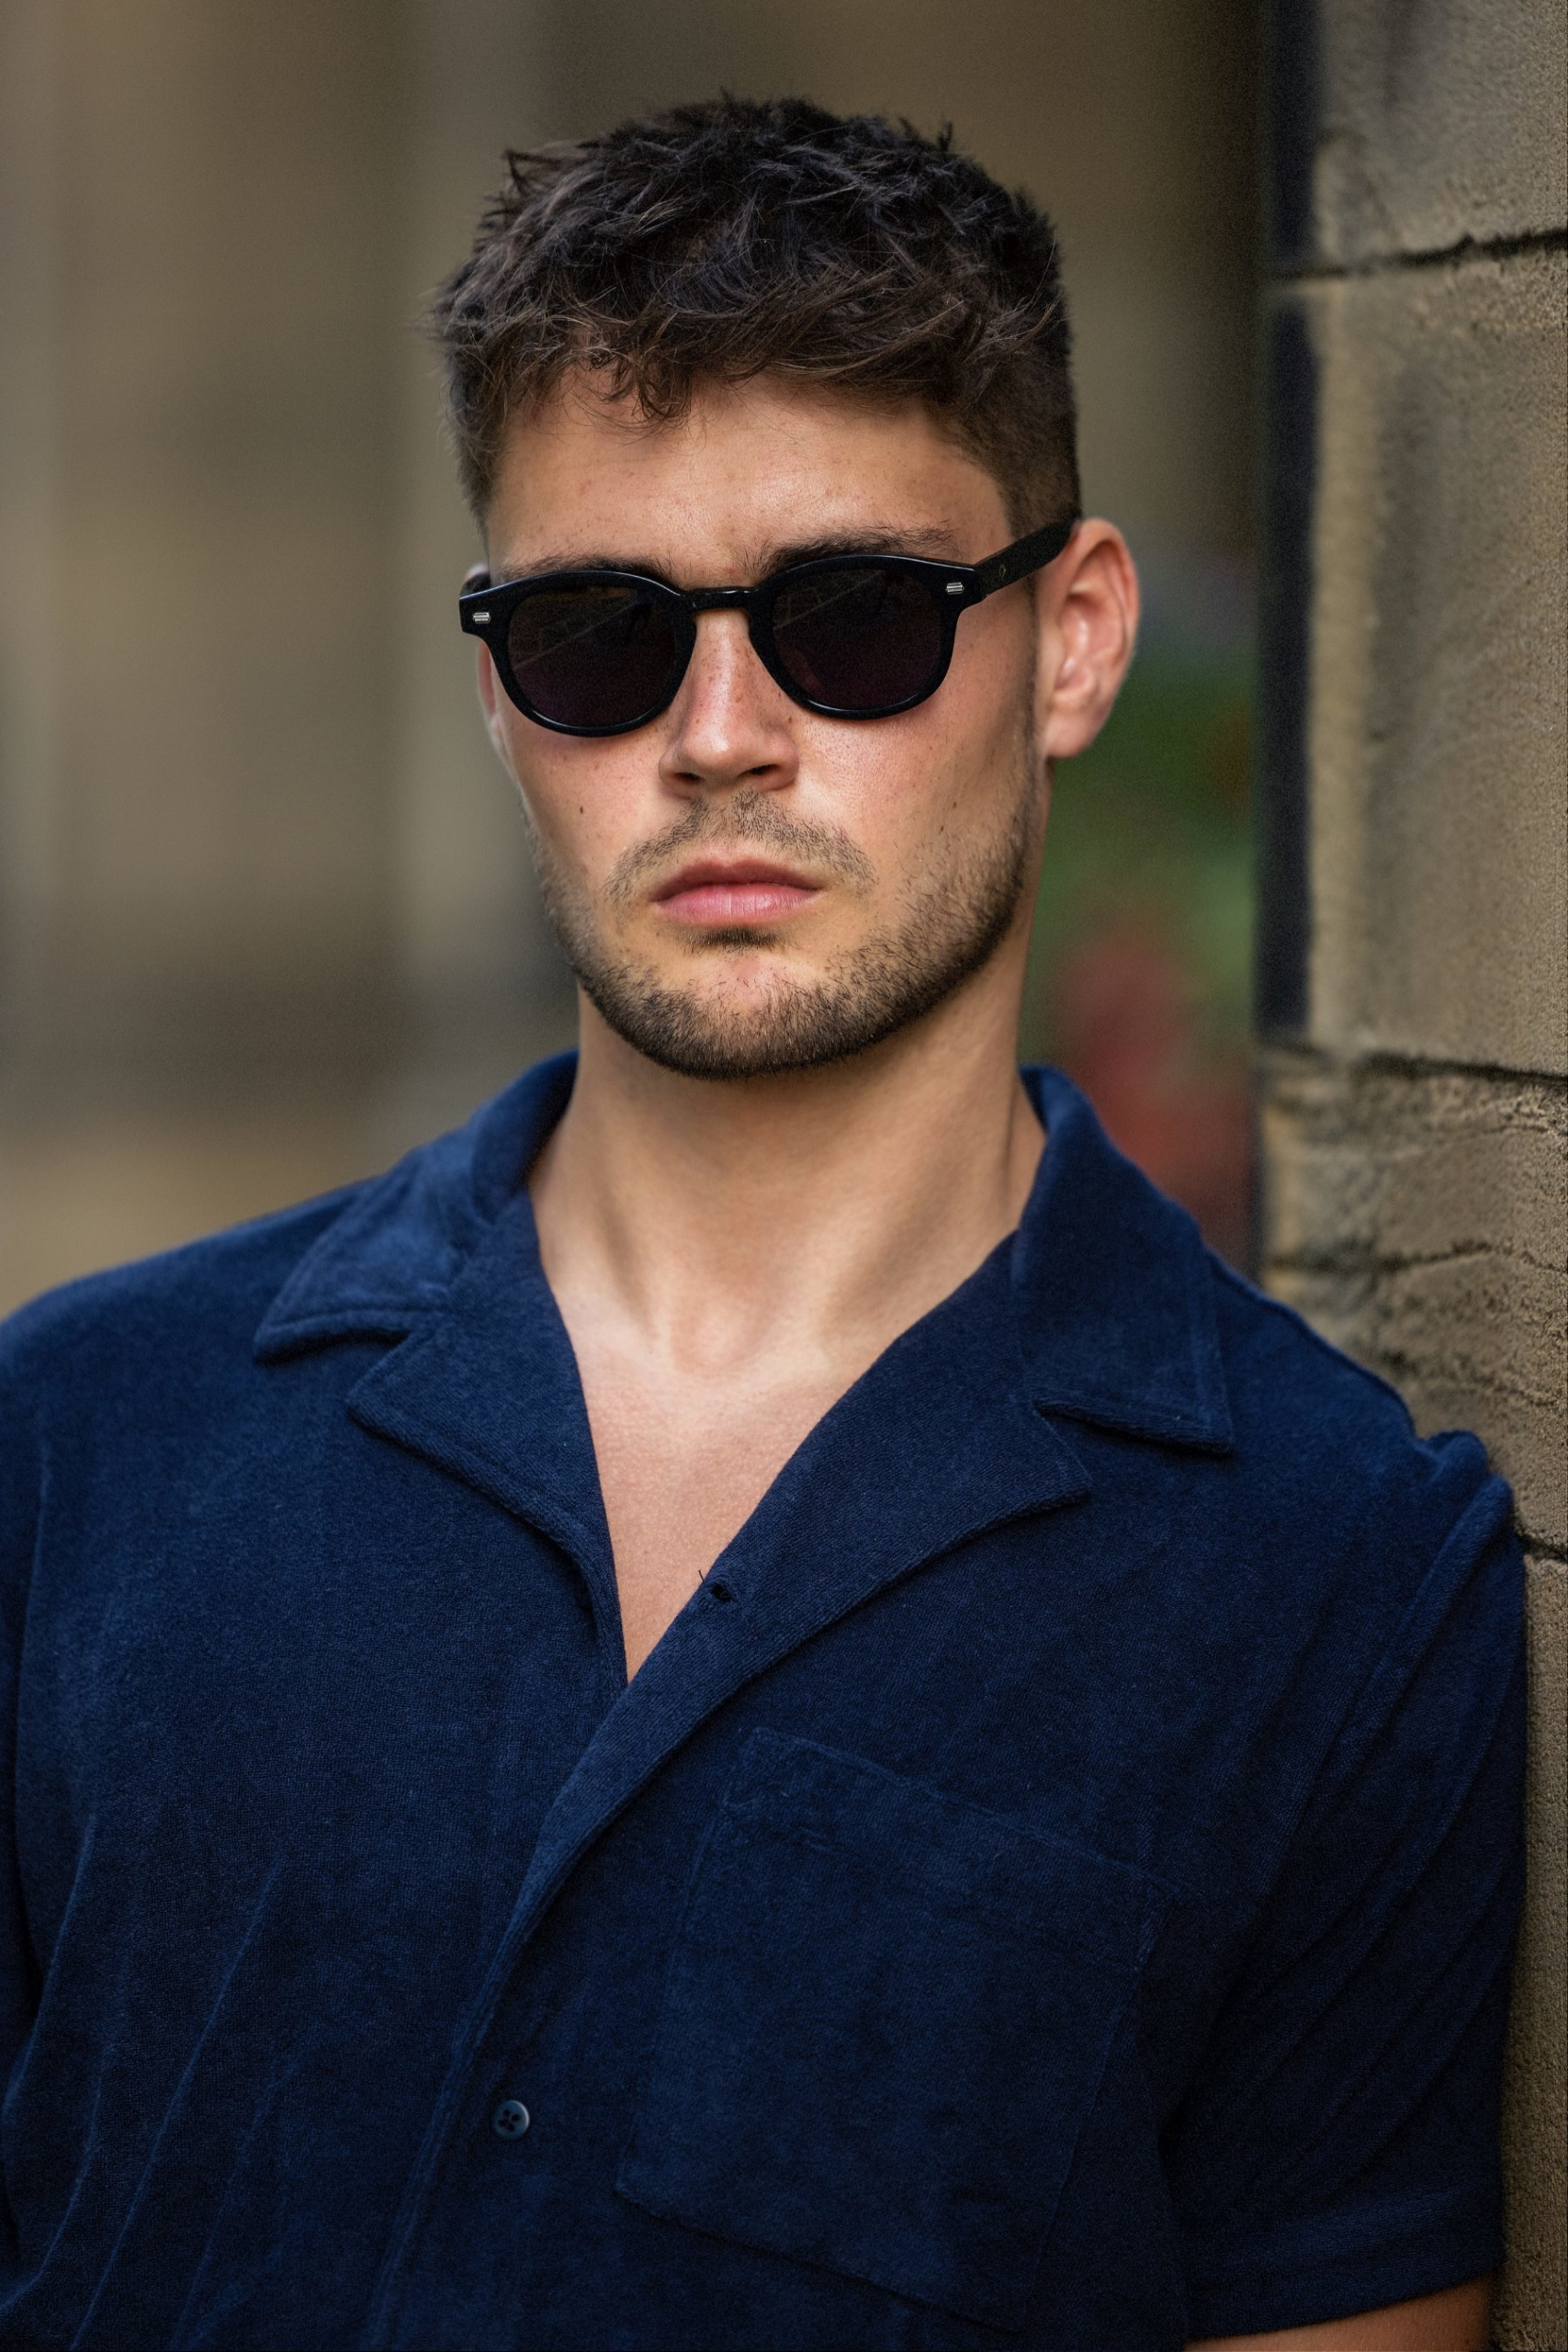 Selfmade Eyewear: Handcrafted Sunglasses Without The Premium Price Tag